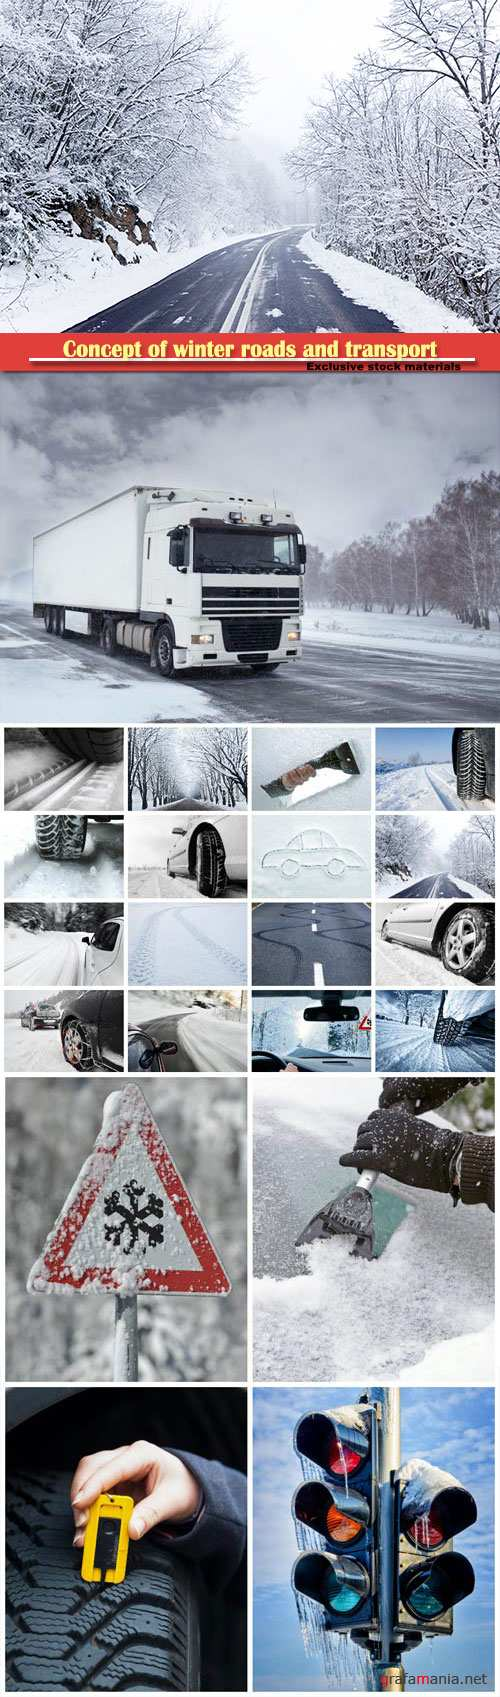 Concept of winter roads and transport